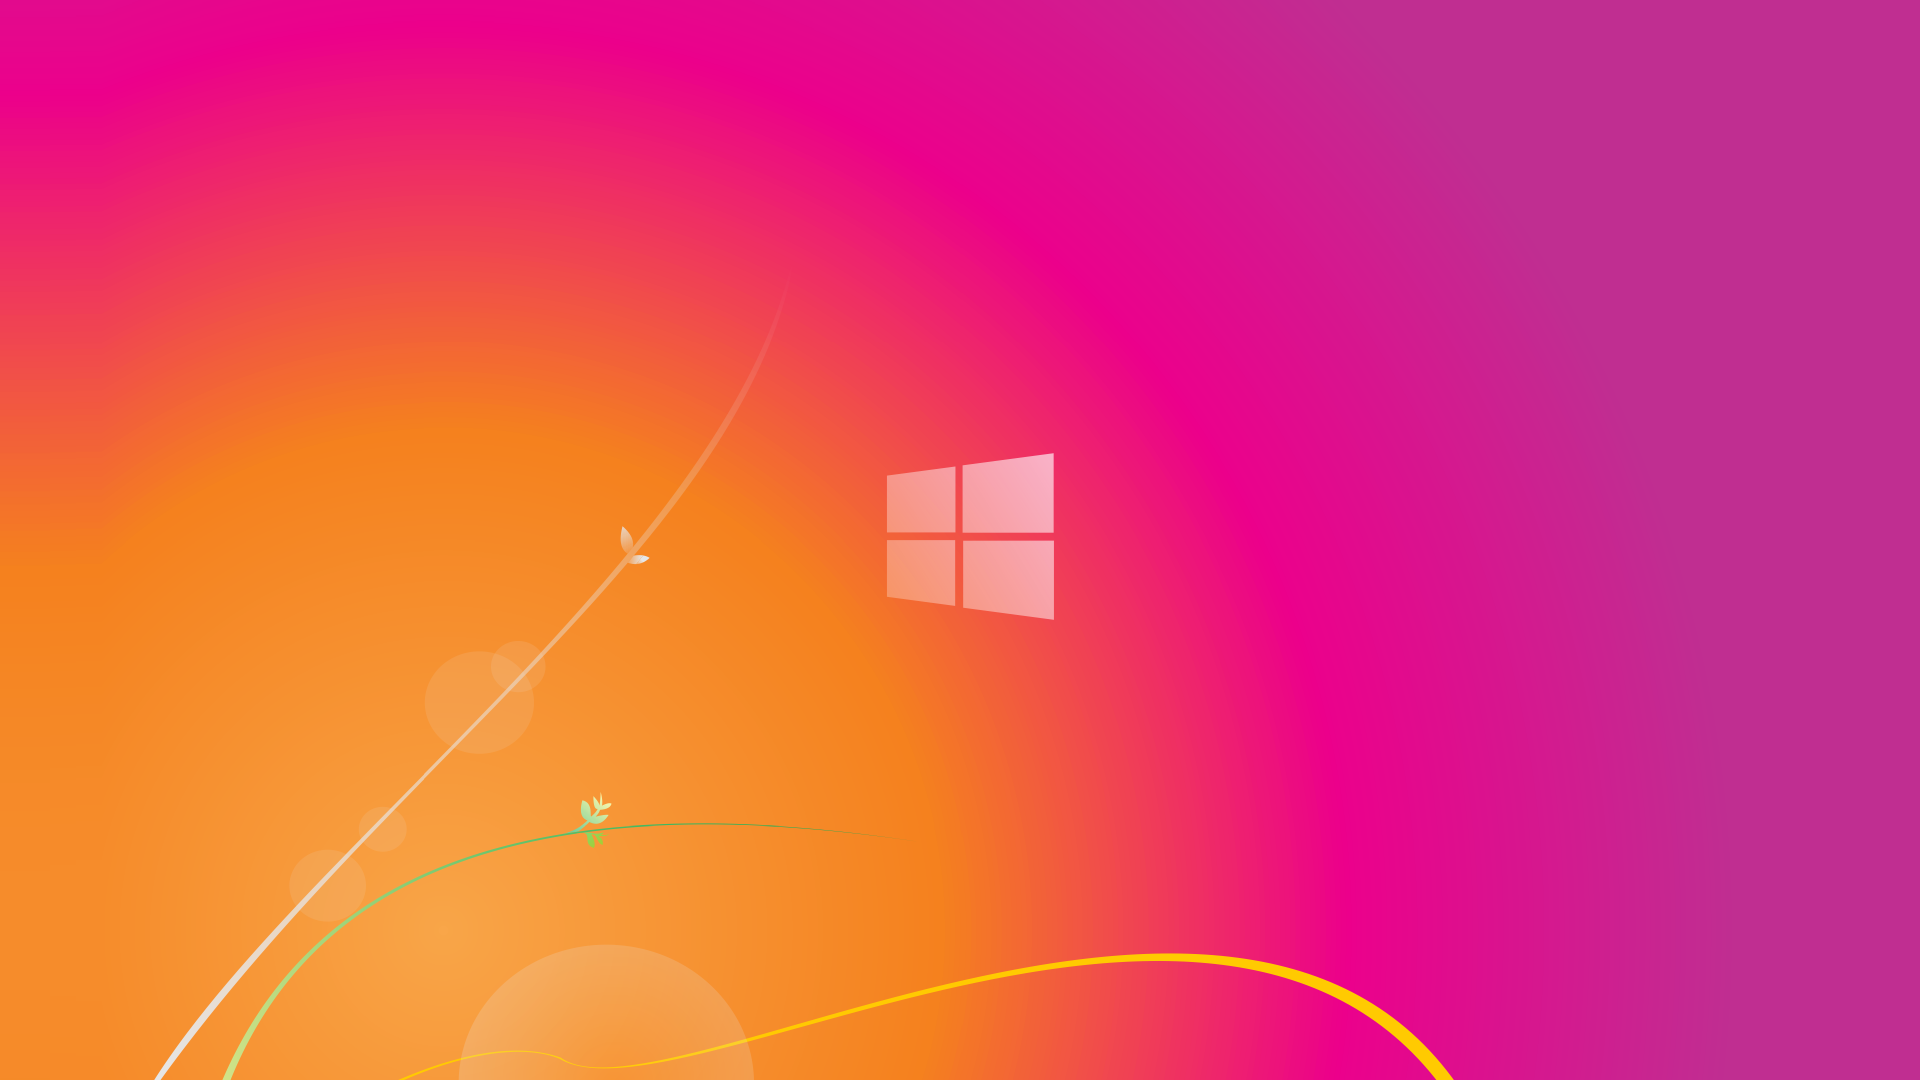 microsoft windows wallpapers by gifteddeviant - photo #17